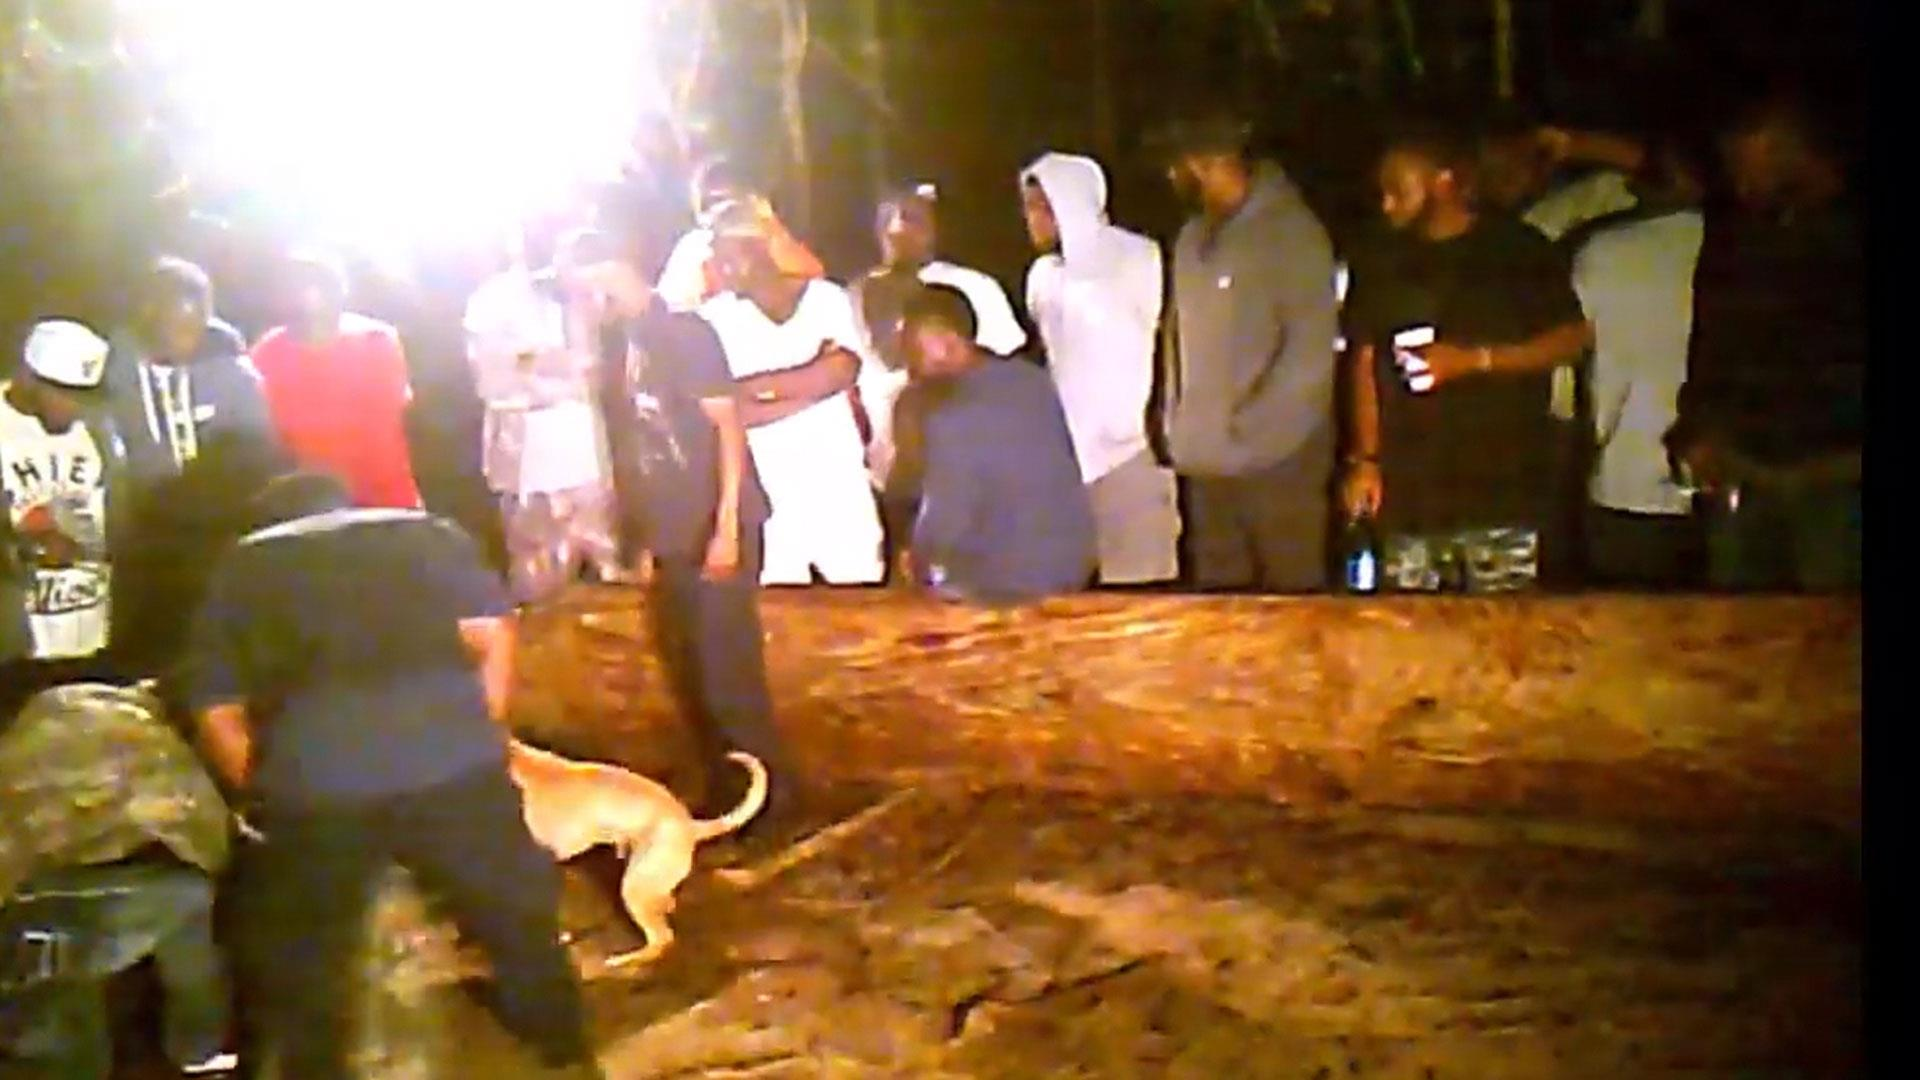 Undercover video offers gruesome look at Florida dogfighting ring